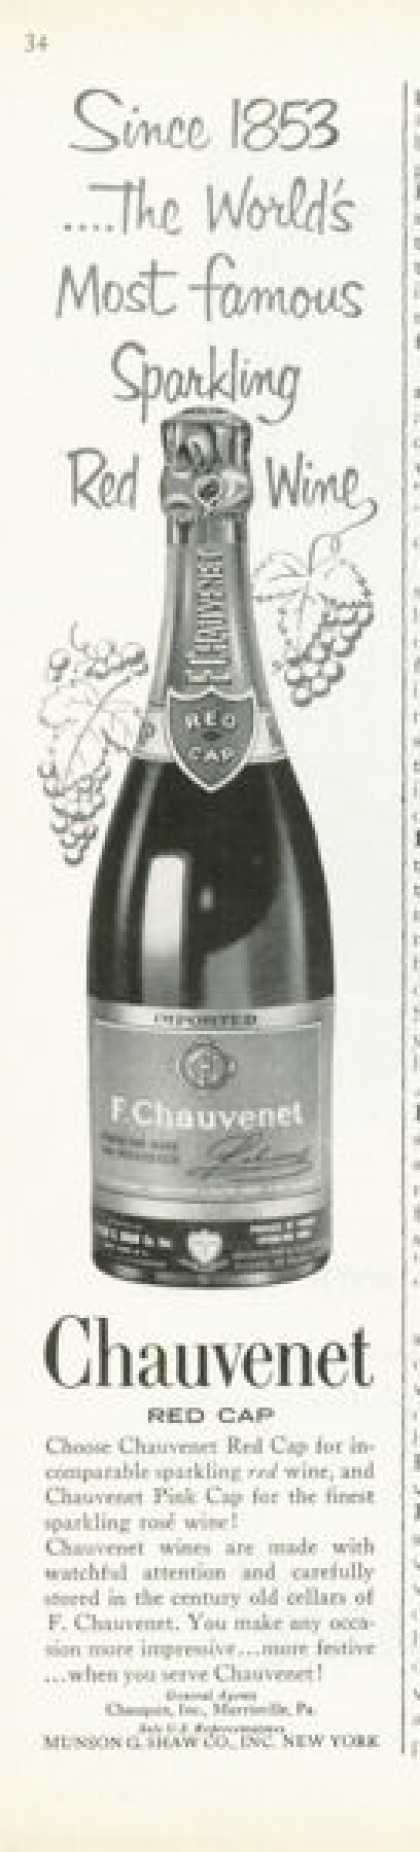 F. Chauvenet Red Wine Bottle (1961)